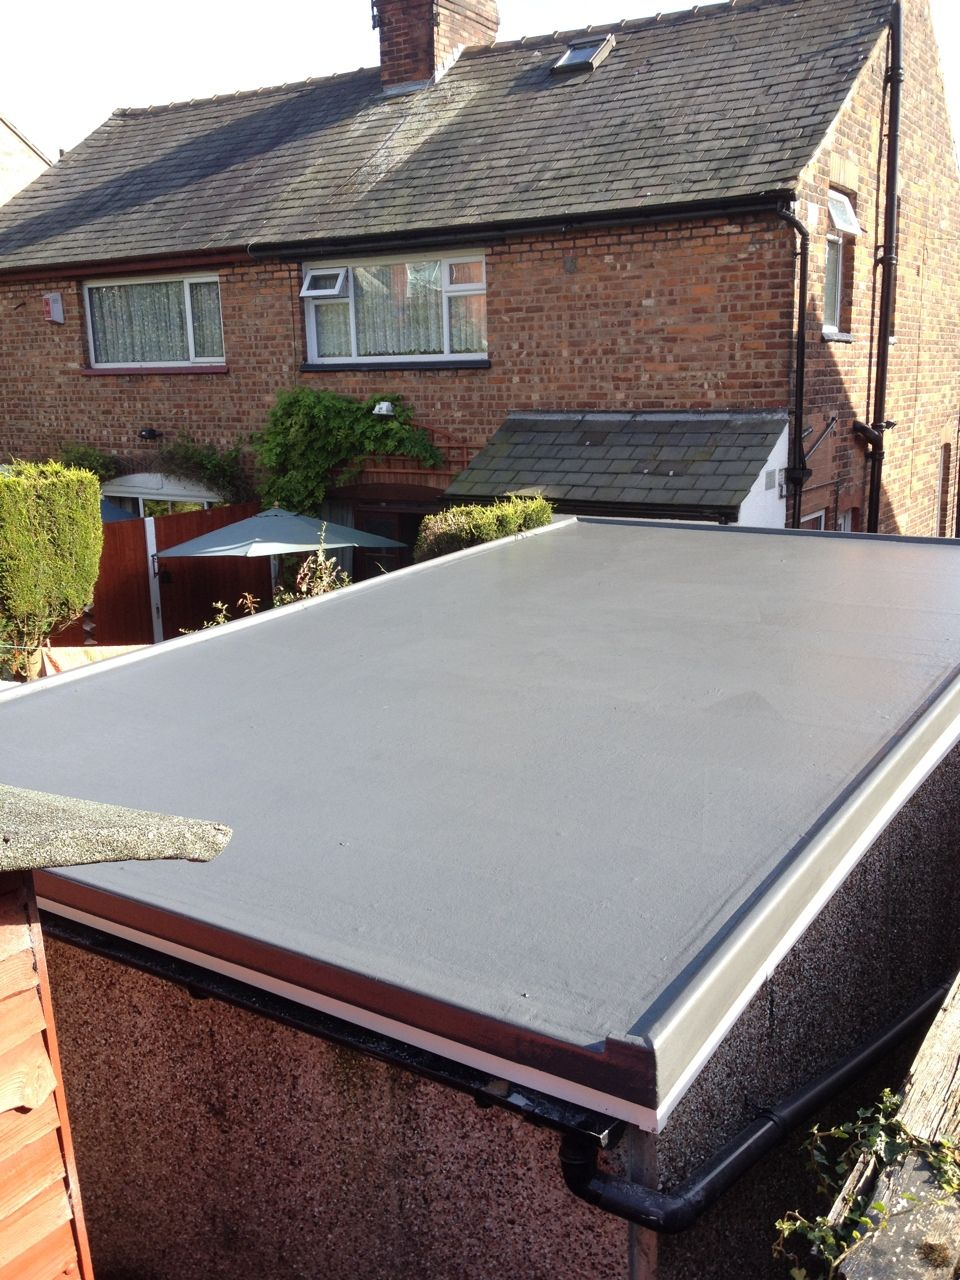 Best Grp Roofing To Garage Roof In Manchester With Images 640 x 480